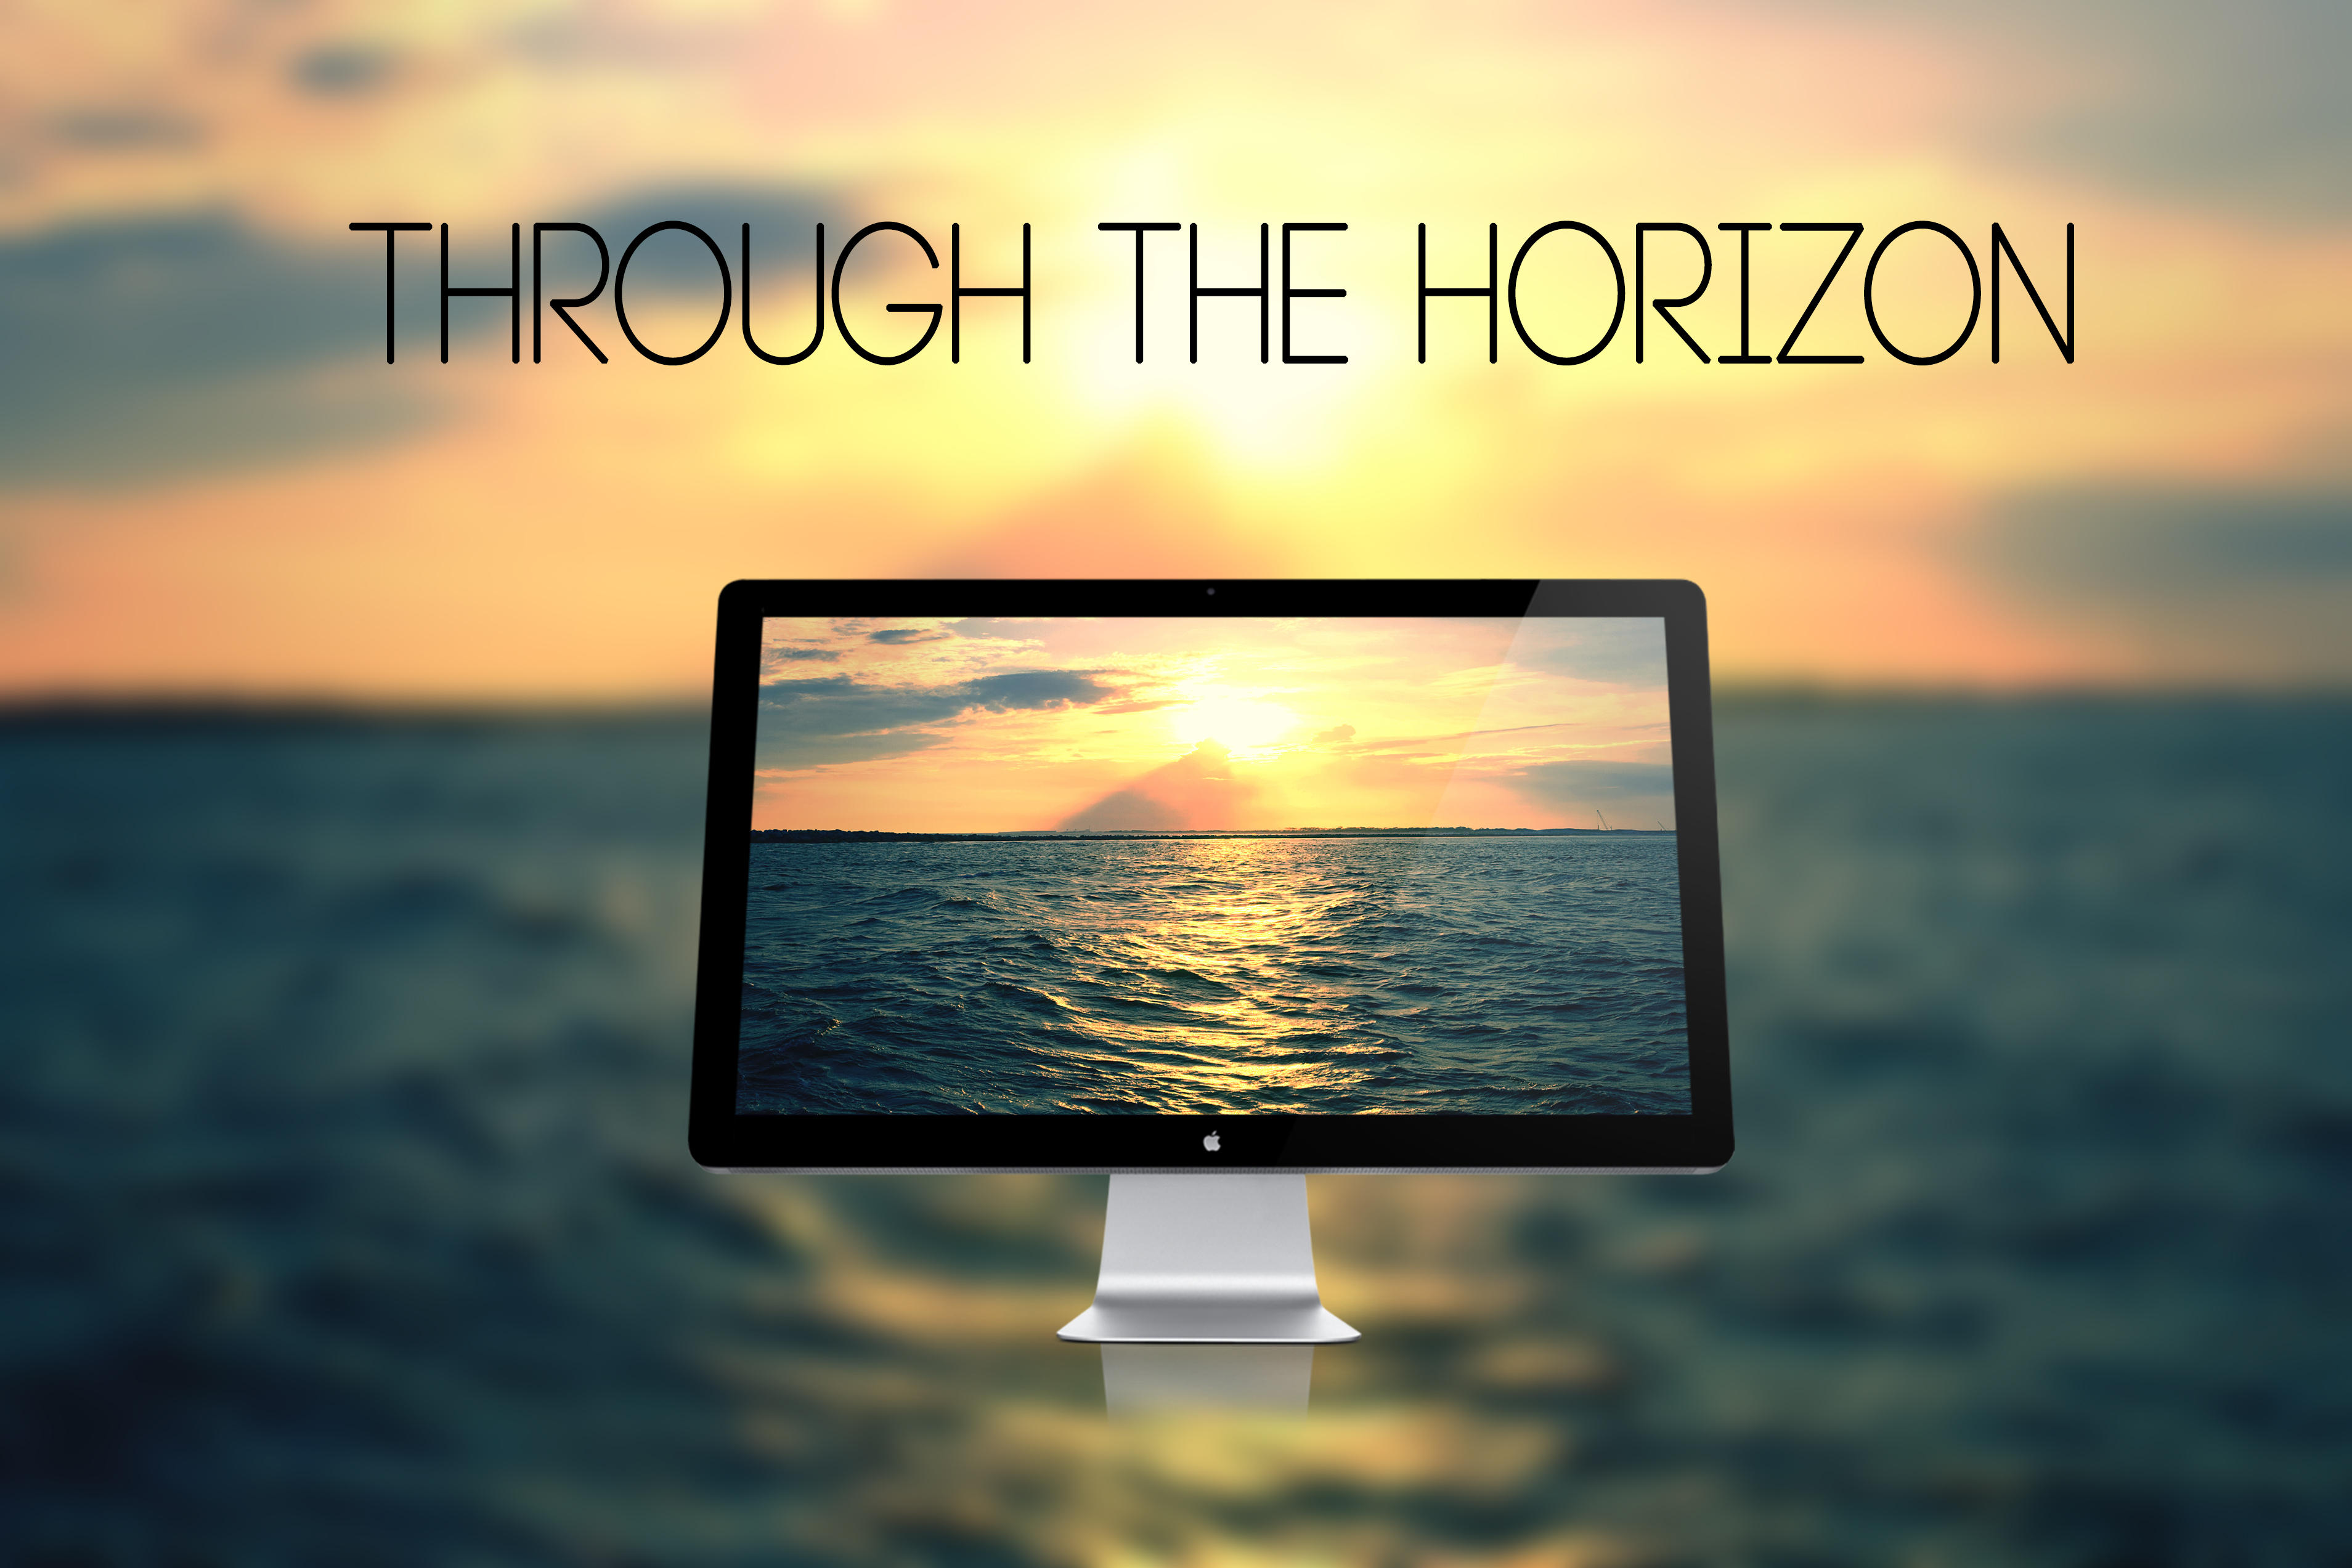 Through the horizon - Wallpaper by Hercules1997